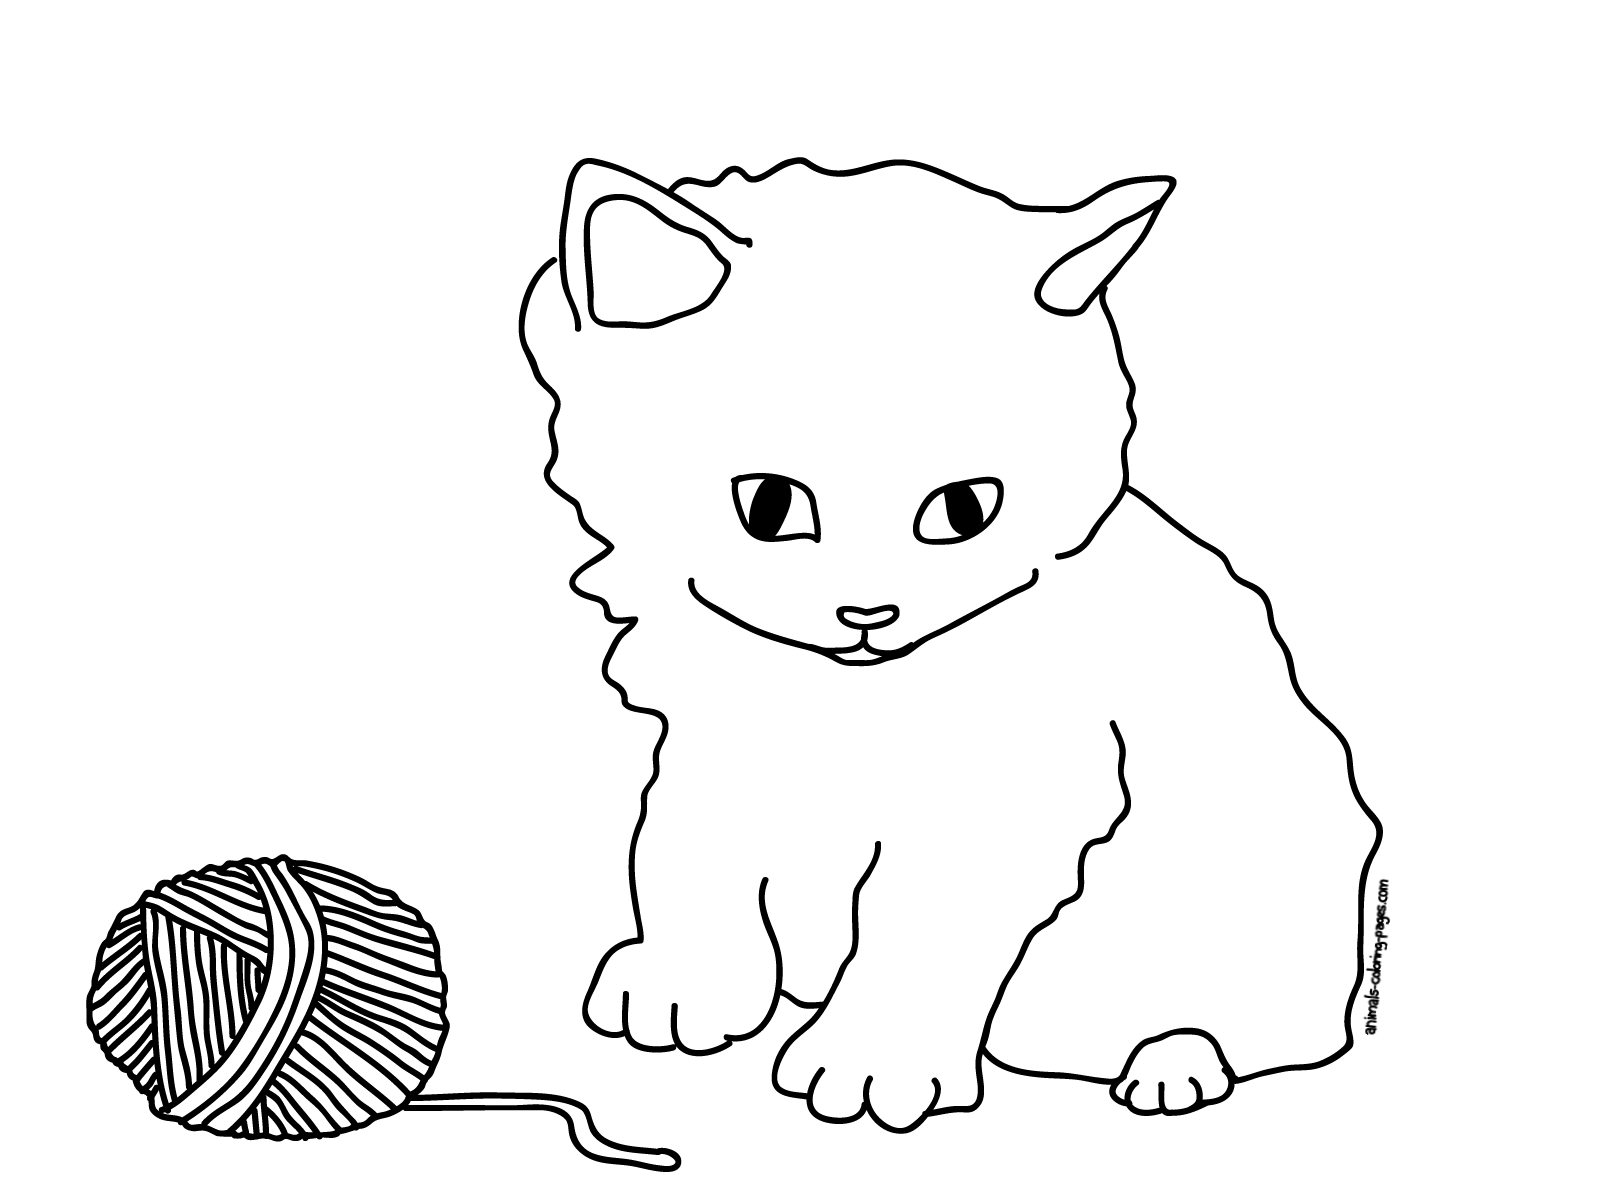 It's just an image of Dynamic Puppy And Kitten Coloring Pages